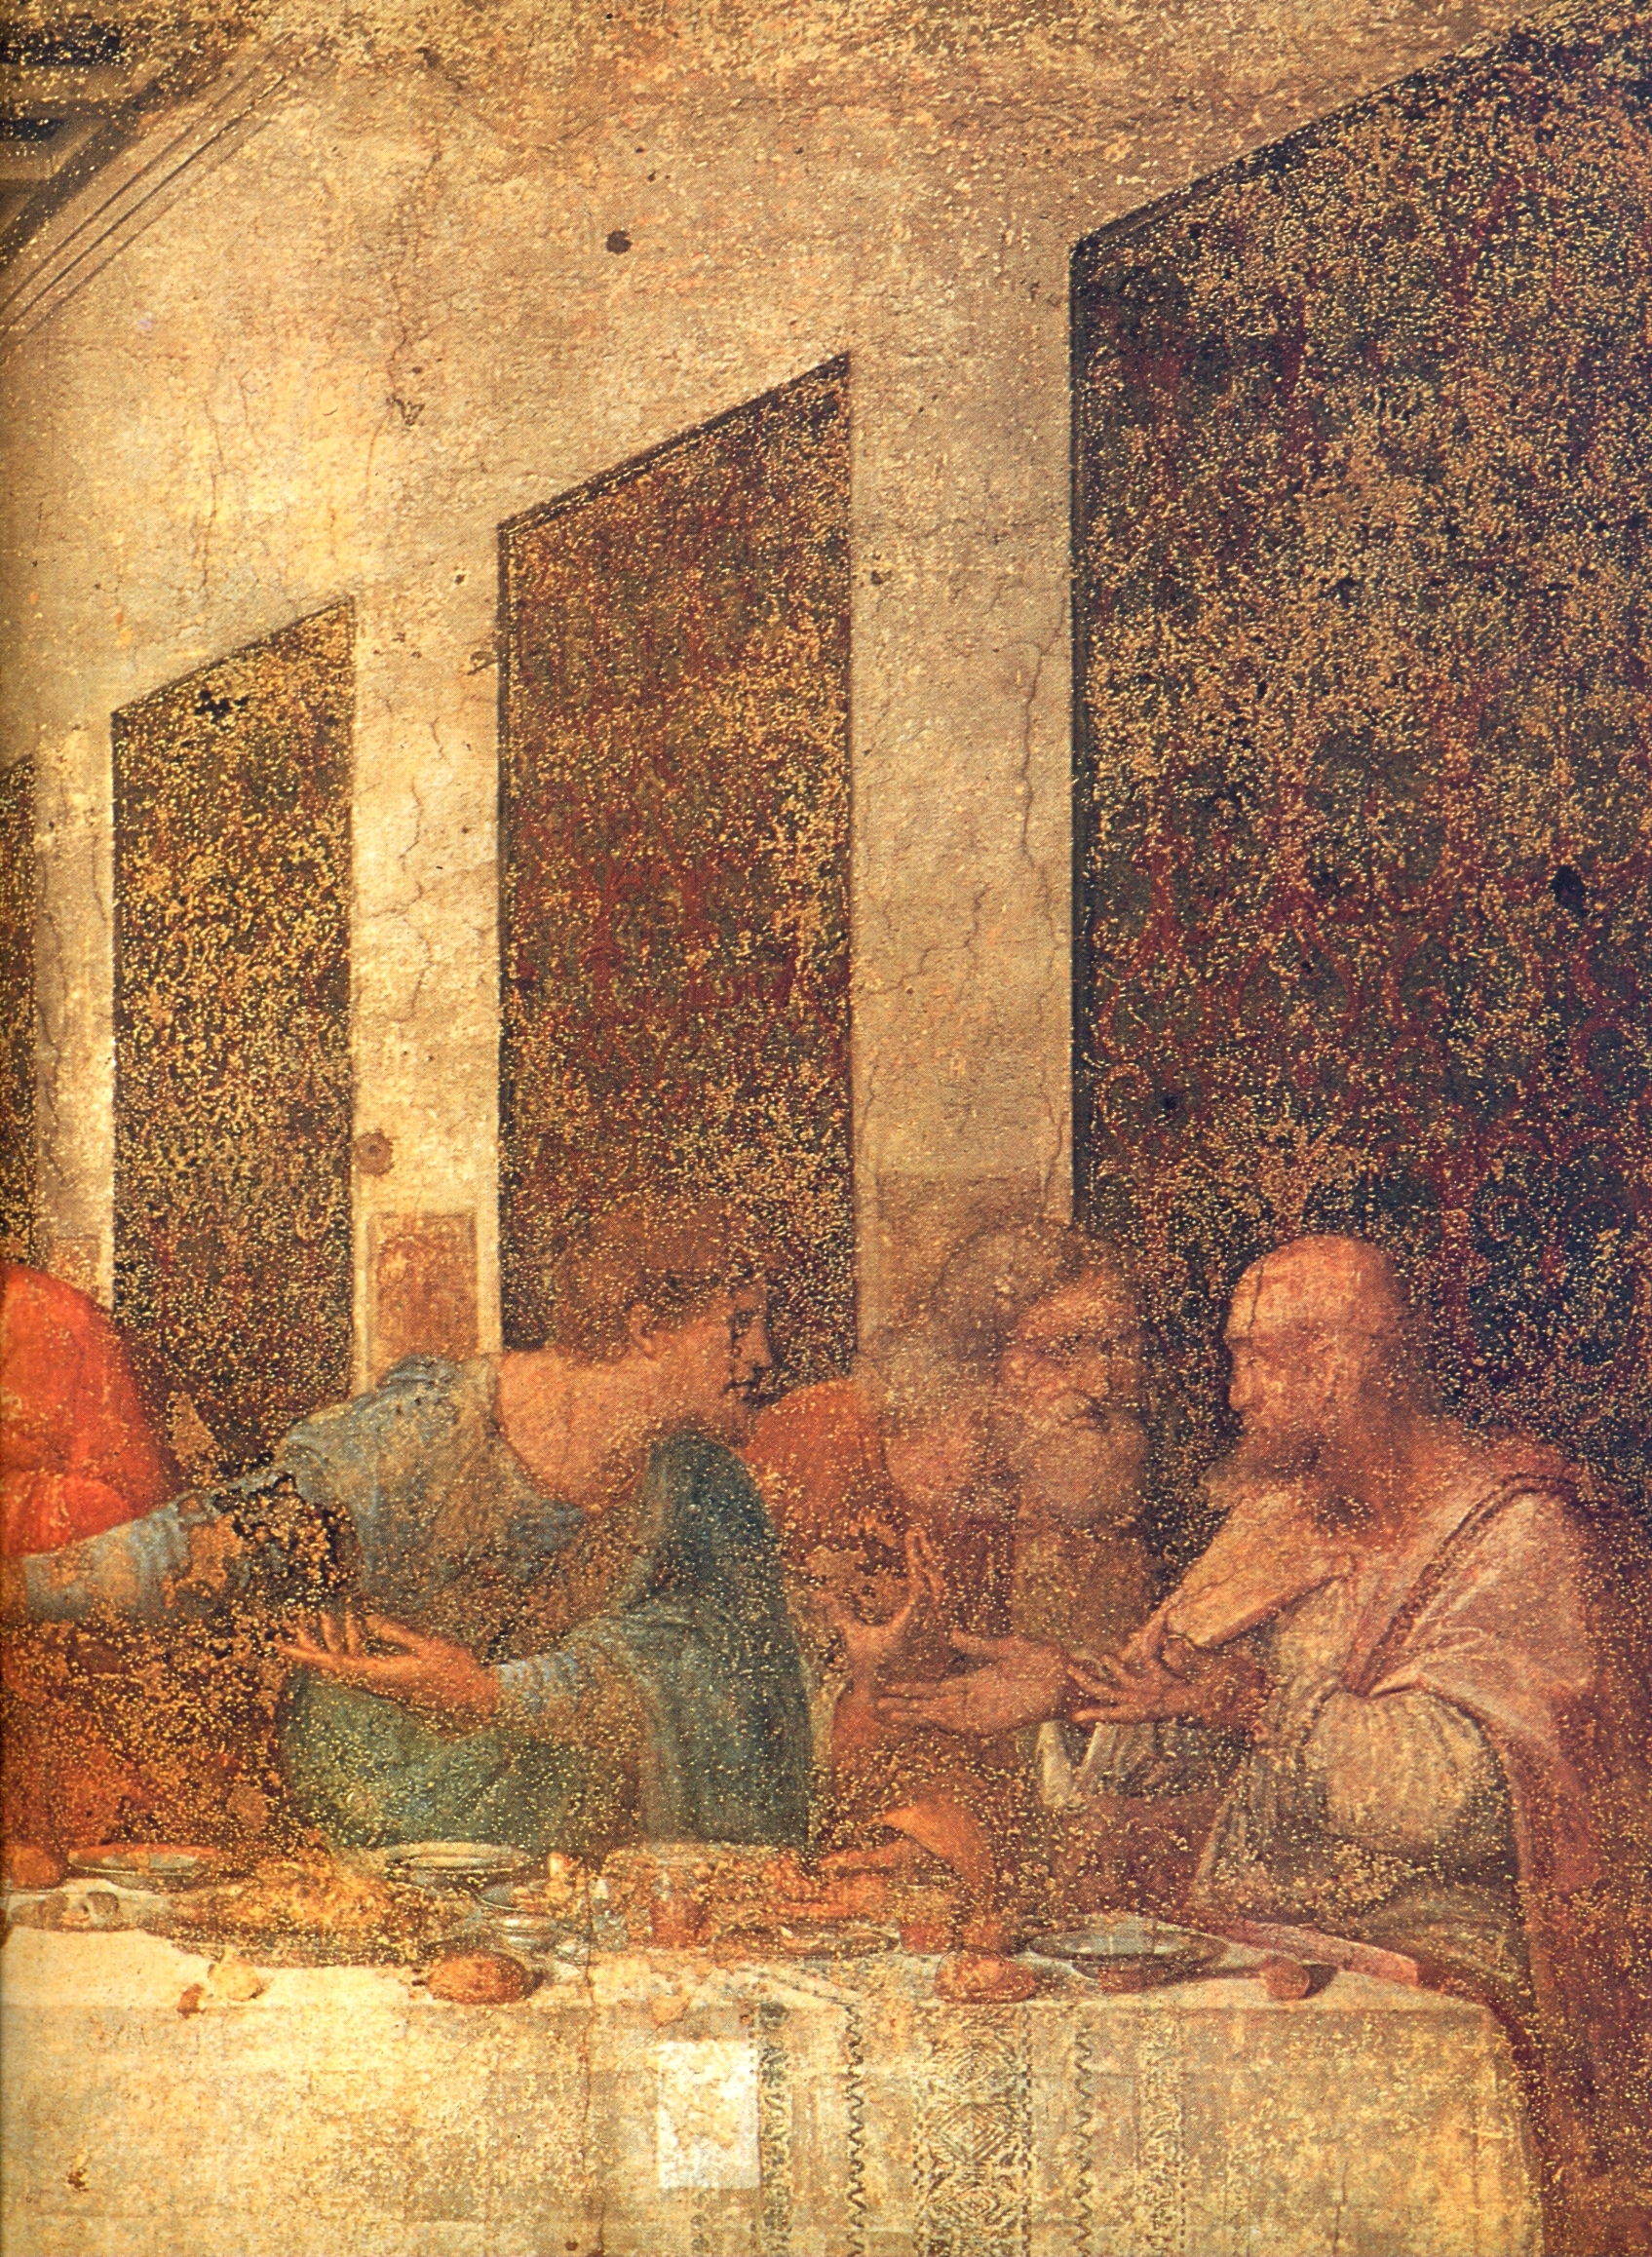 The Last Supper/Il Cenacolo/Santa Maria delle Grazie Milan, The Last Supper Il Cenacolo or L'Ultima Cena, is a late 15th ...